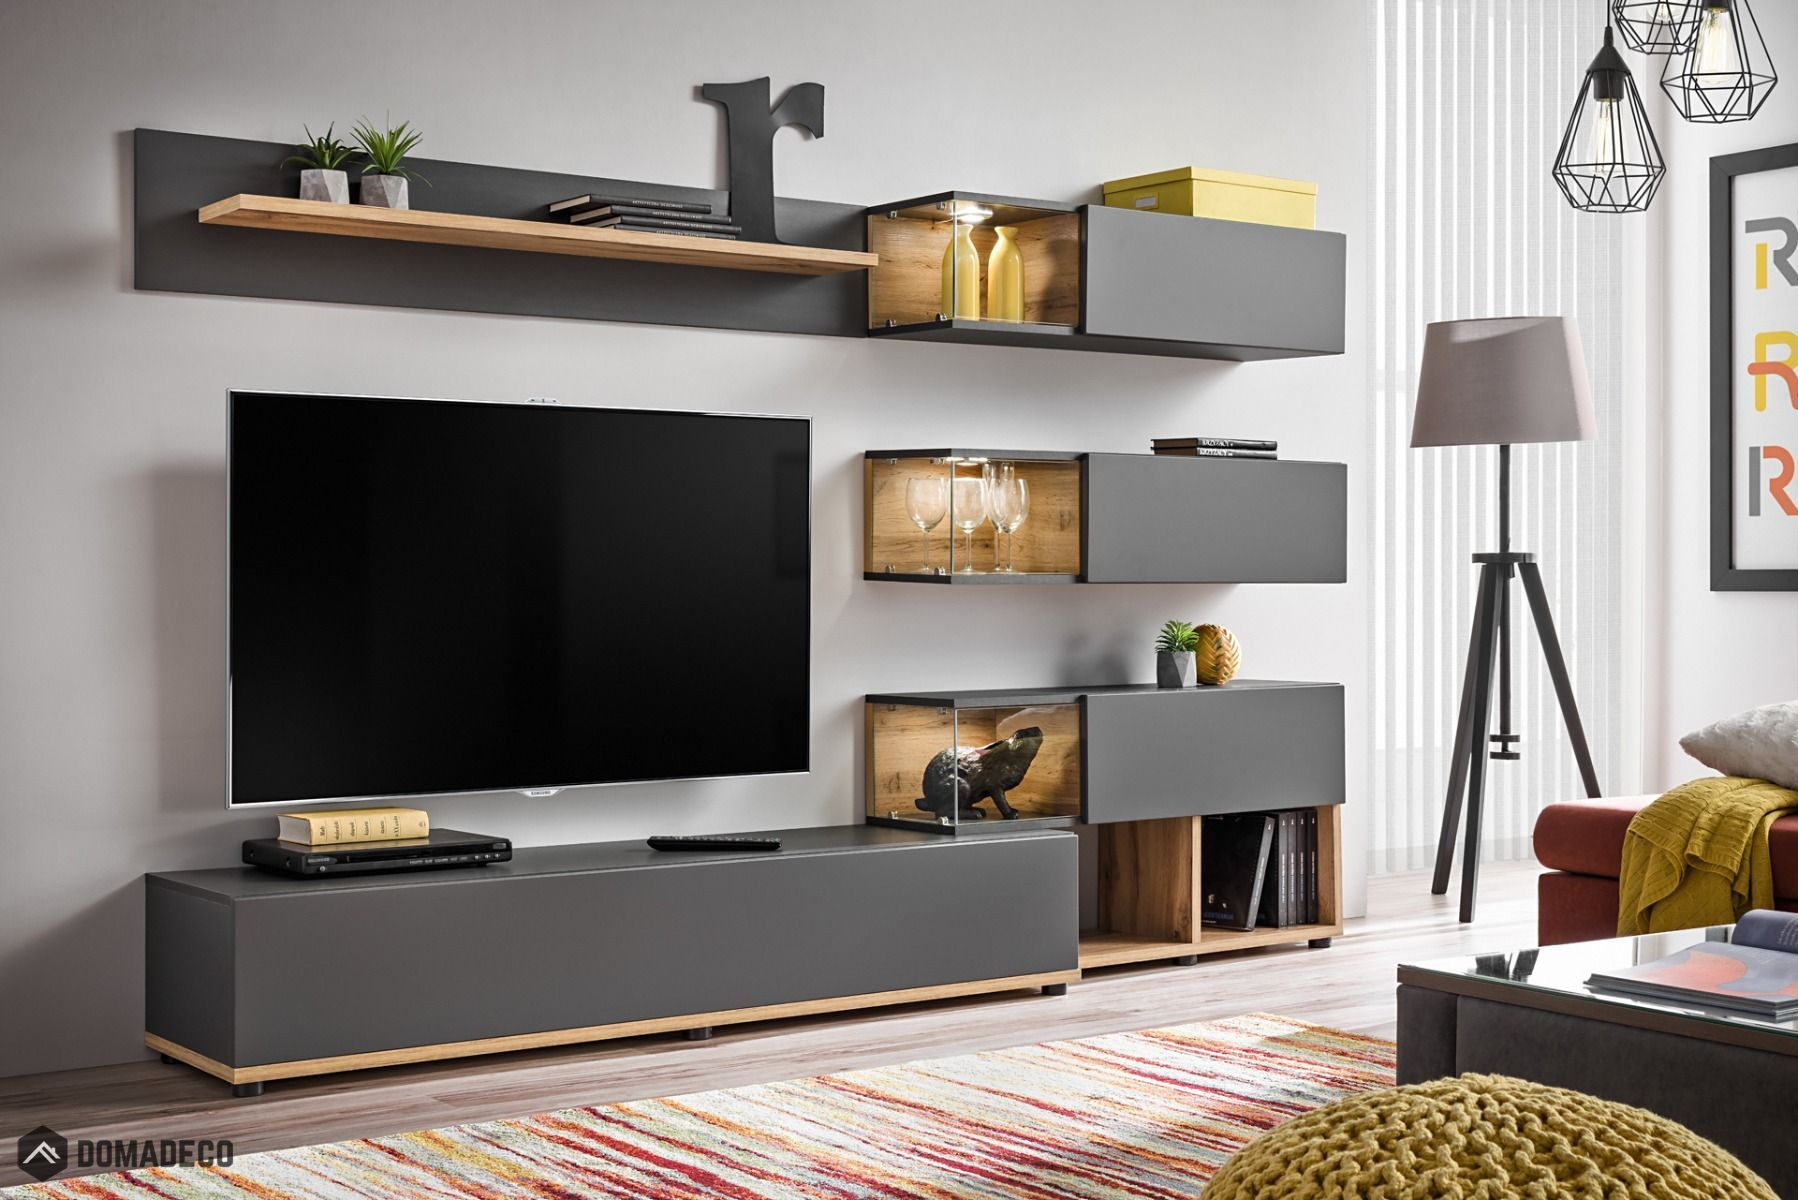 Simi modern entertainment center Entertainment Centers